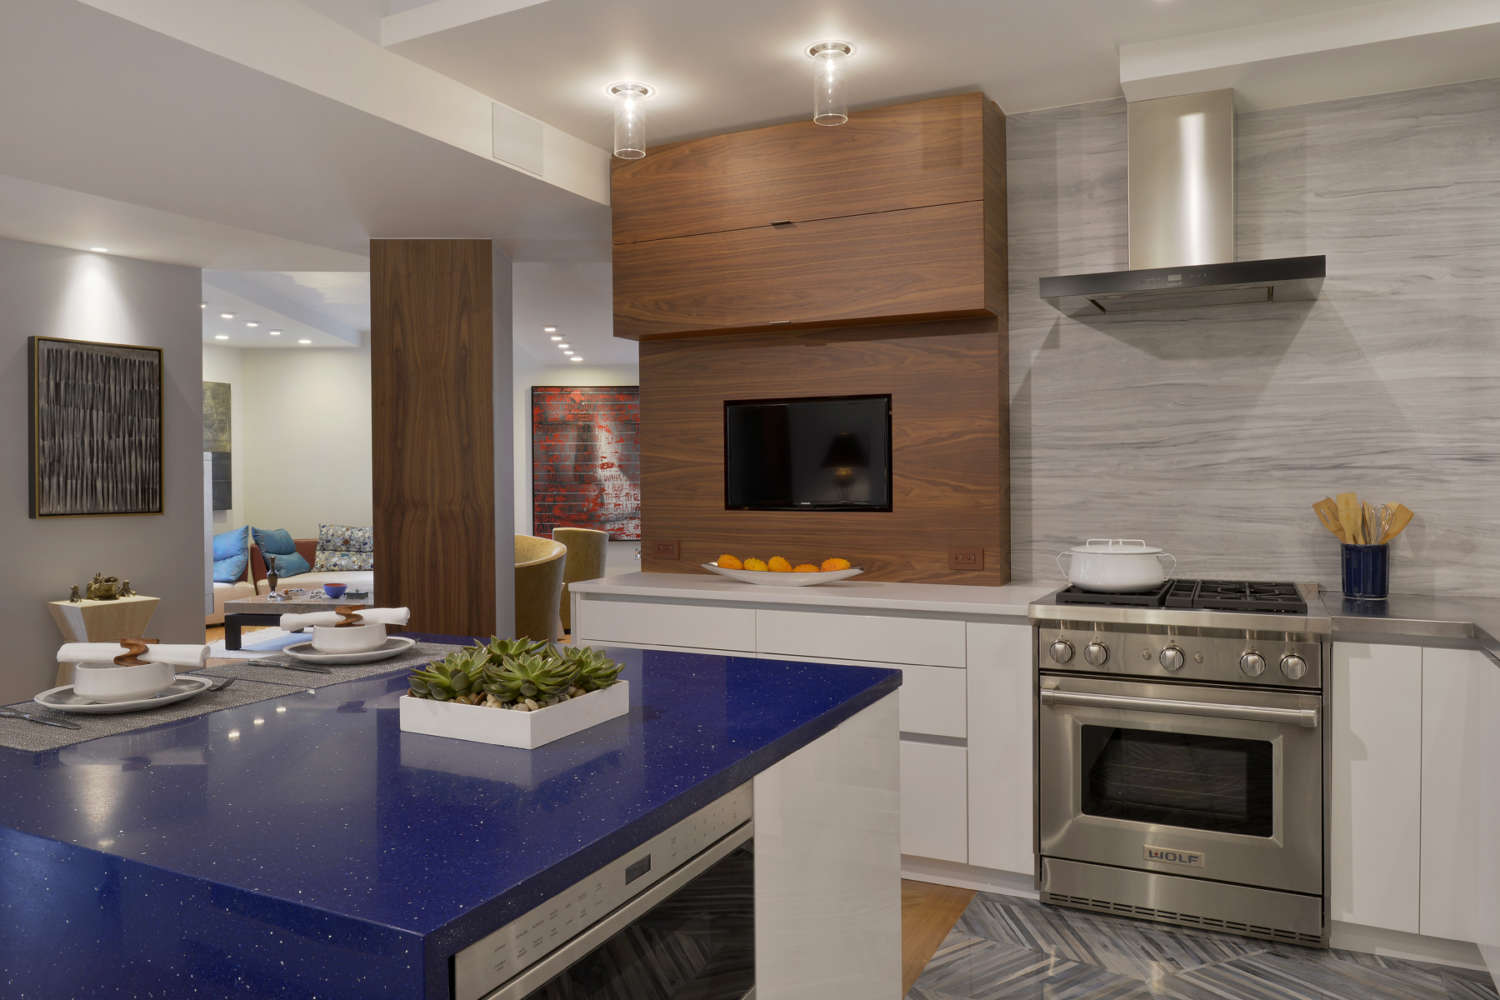 Contemporary kitchen with fully custom natural walnut and white high-gloss flat panel, frameless Artcraft cabinetry opens up into an adjacent seating area. Small island has cobalt blue top, and counters are edged with brushed aluminum. Design by Tom Vecchio of Bilotta Kitchens.